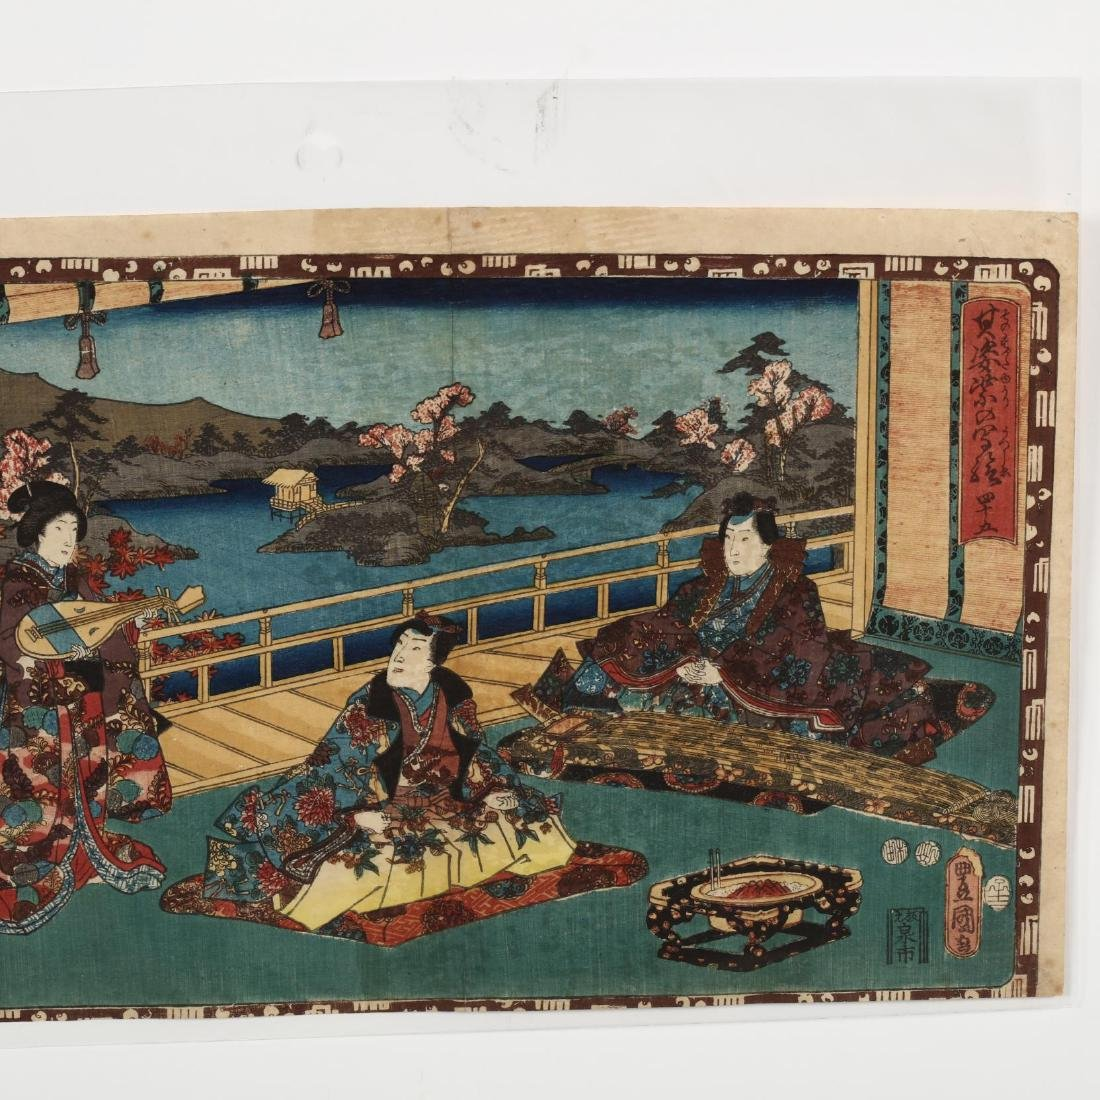 A Group of Seven Woodblock Prints by Utagawa Kunisada - 7